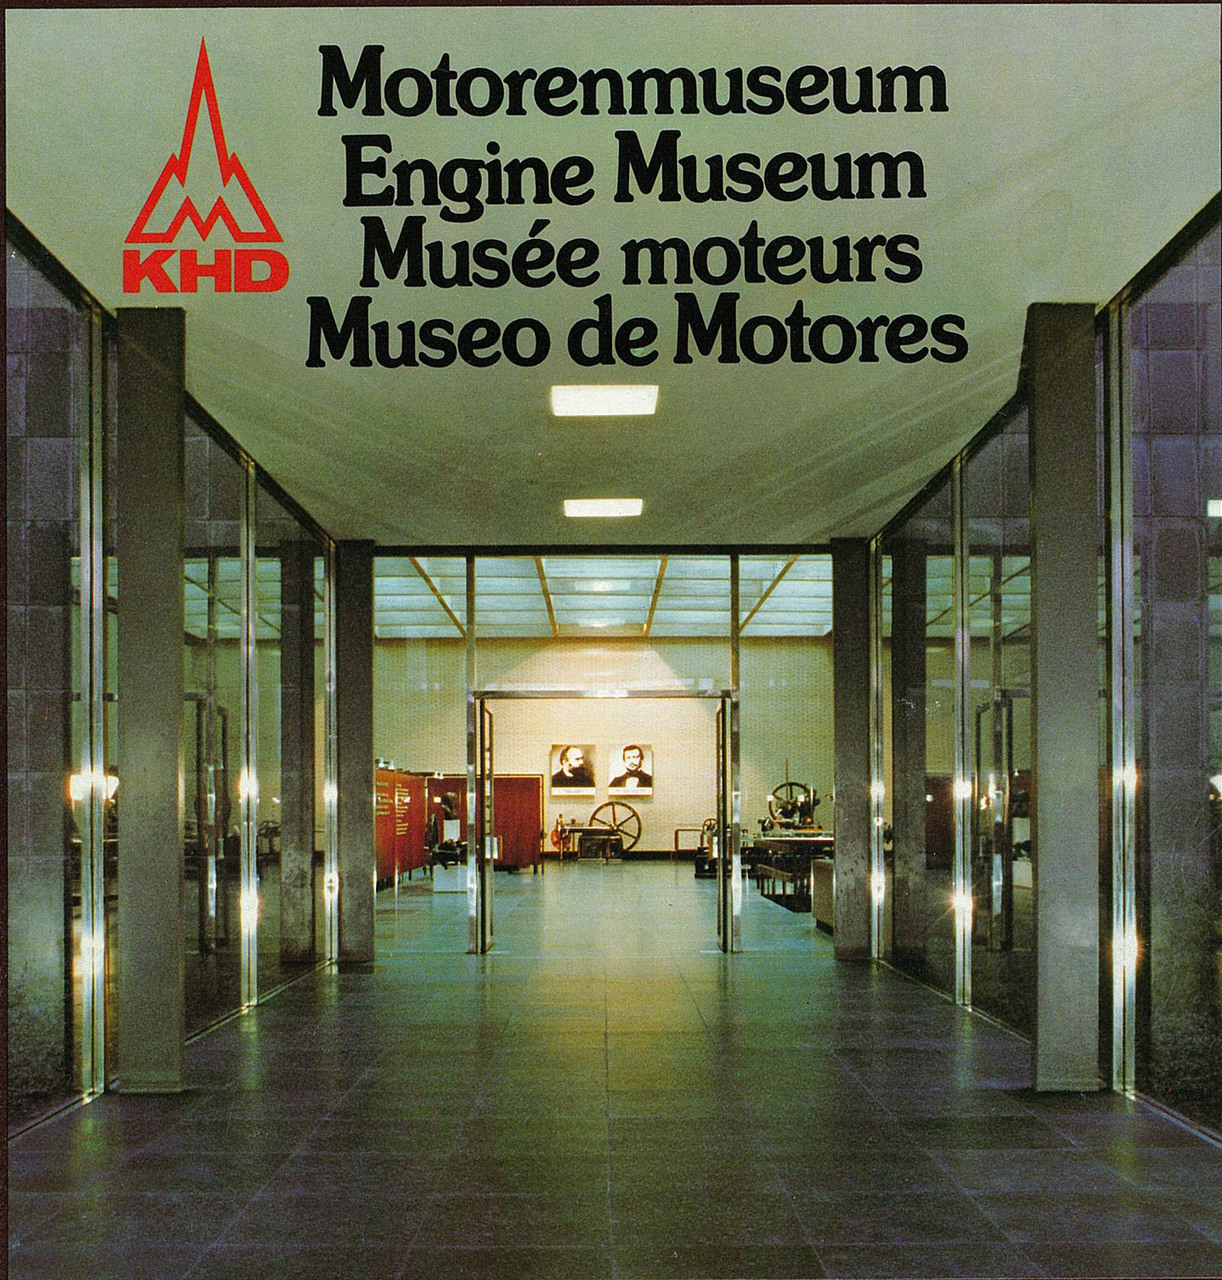 KHD MOTORENMUSEUM